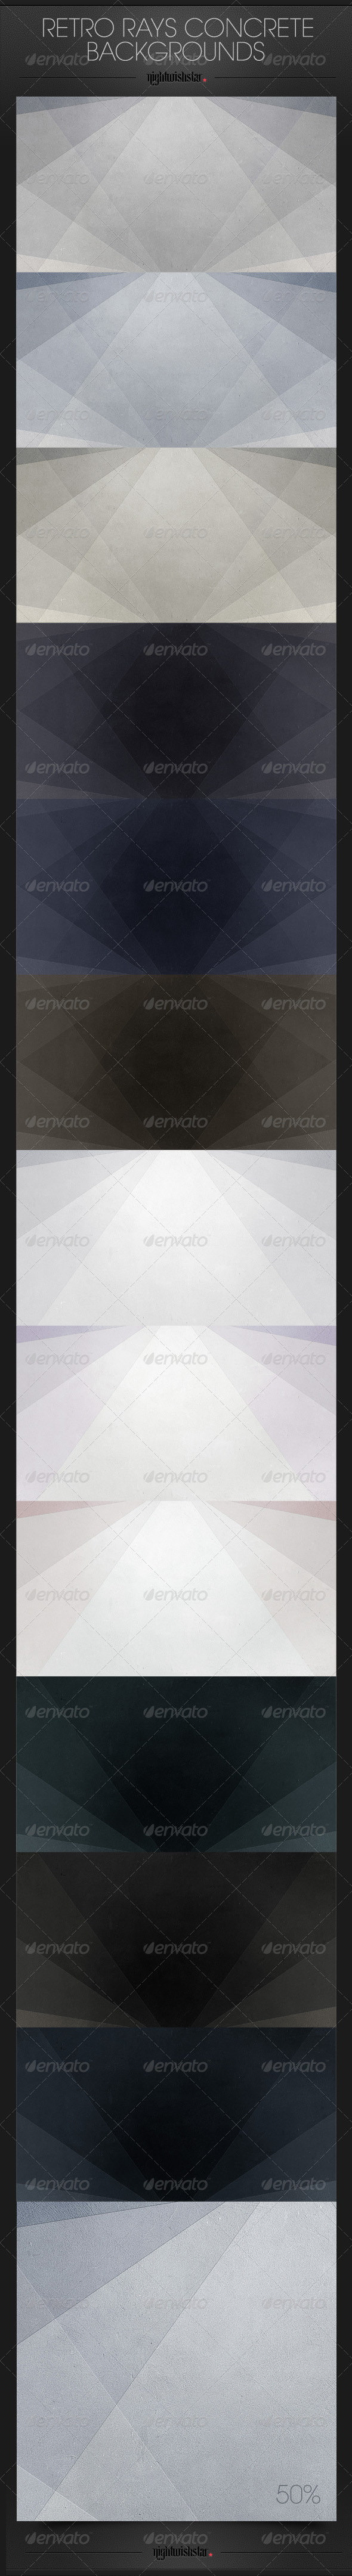 GraphicRiver Retro Rays Concrete Wall Backgrounds 6641671